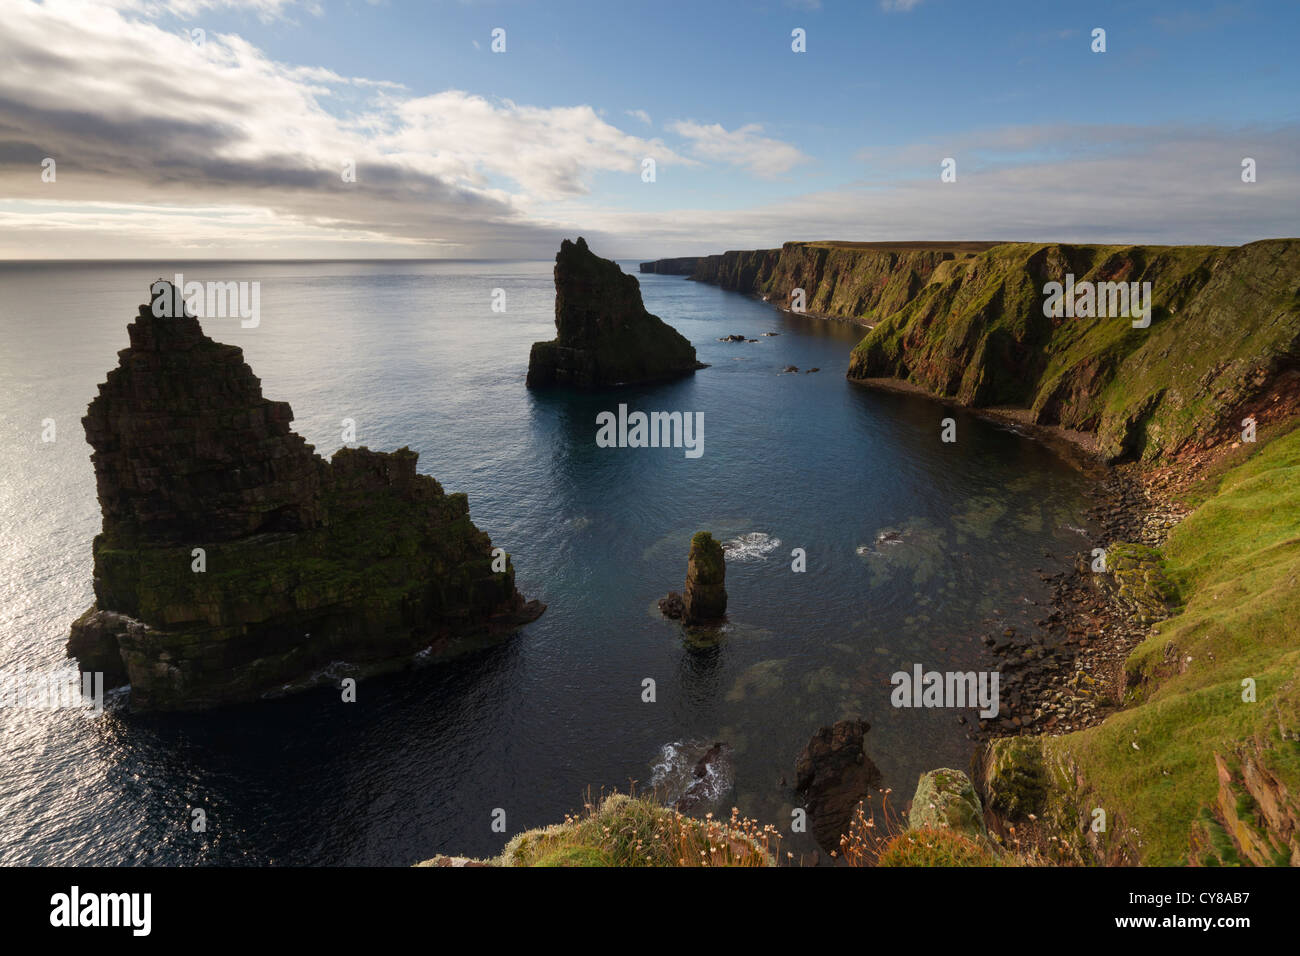 Caithness, Duncansby sea stacks - Stock Image